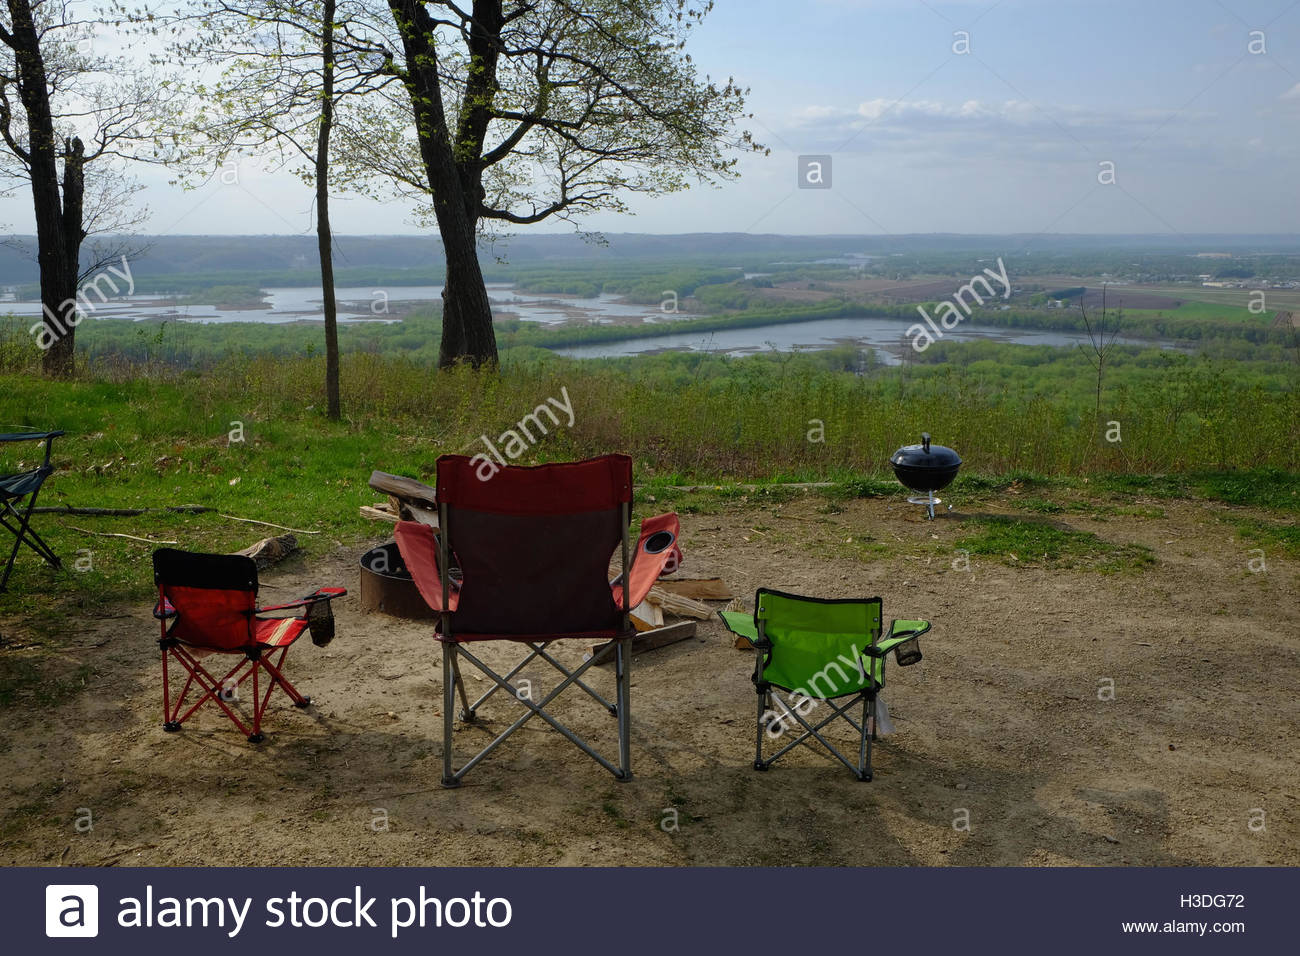 Three camp chairs near an outdoor fire pit sit at a campsite overlooking the Wisconsin River in Wisconsin. - Stock Image